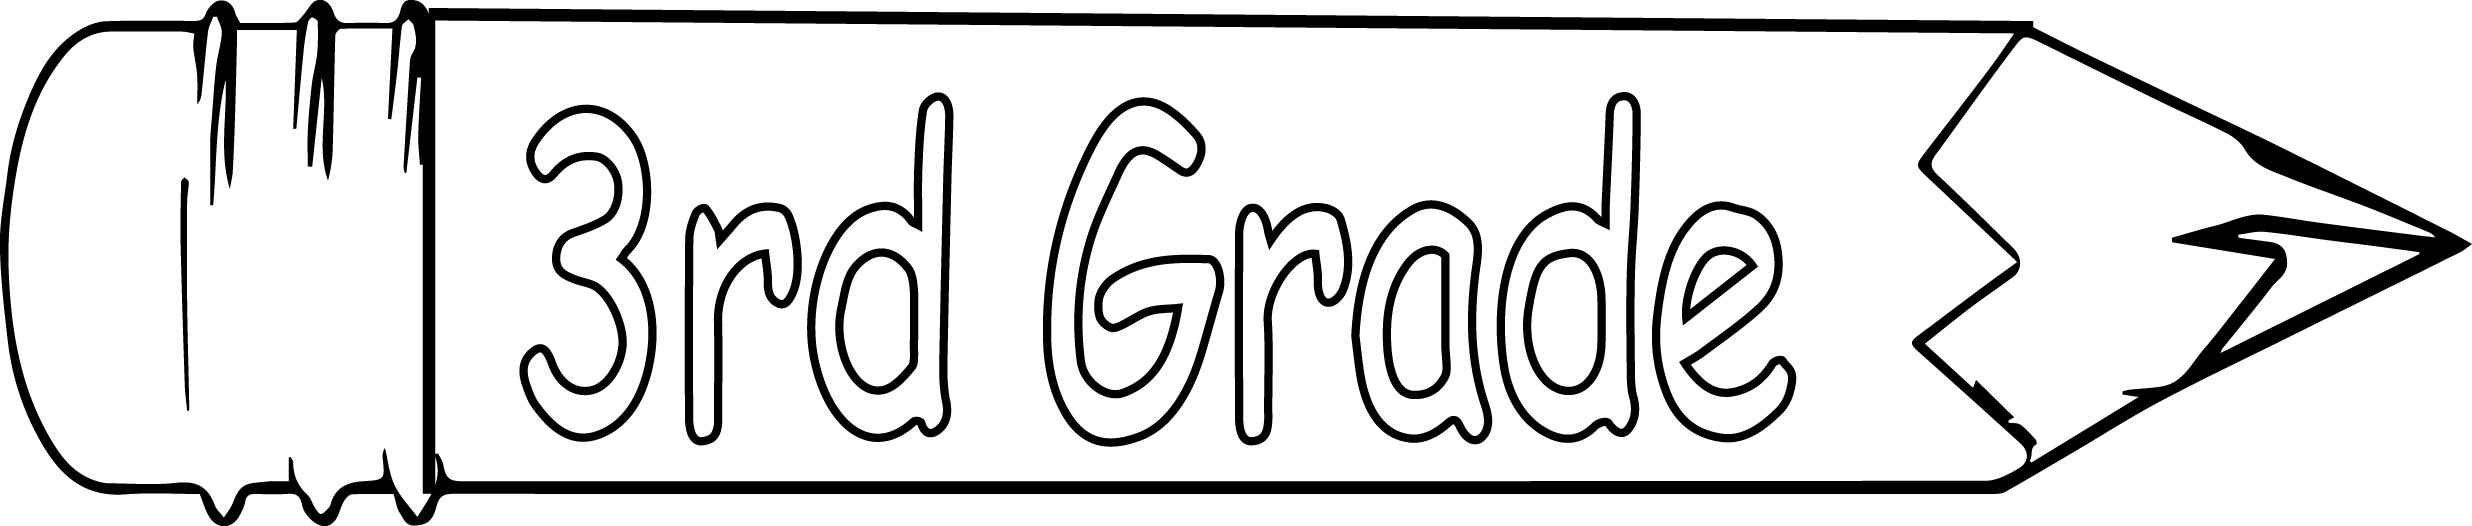 coloring pages for 3rd graders 3rd grade coloring page wecoloring coloring for 3rd pages graders